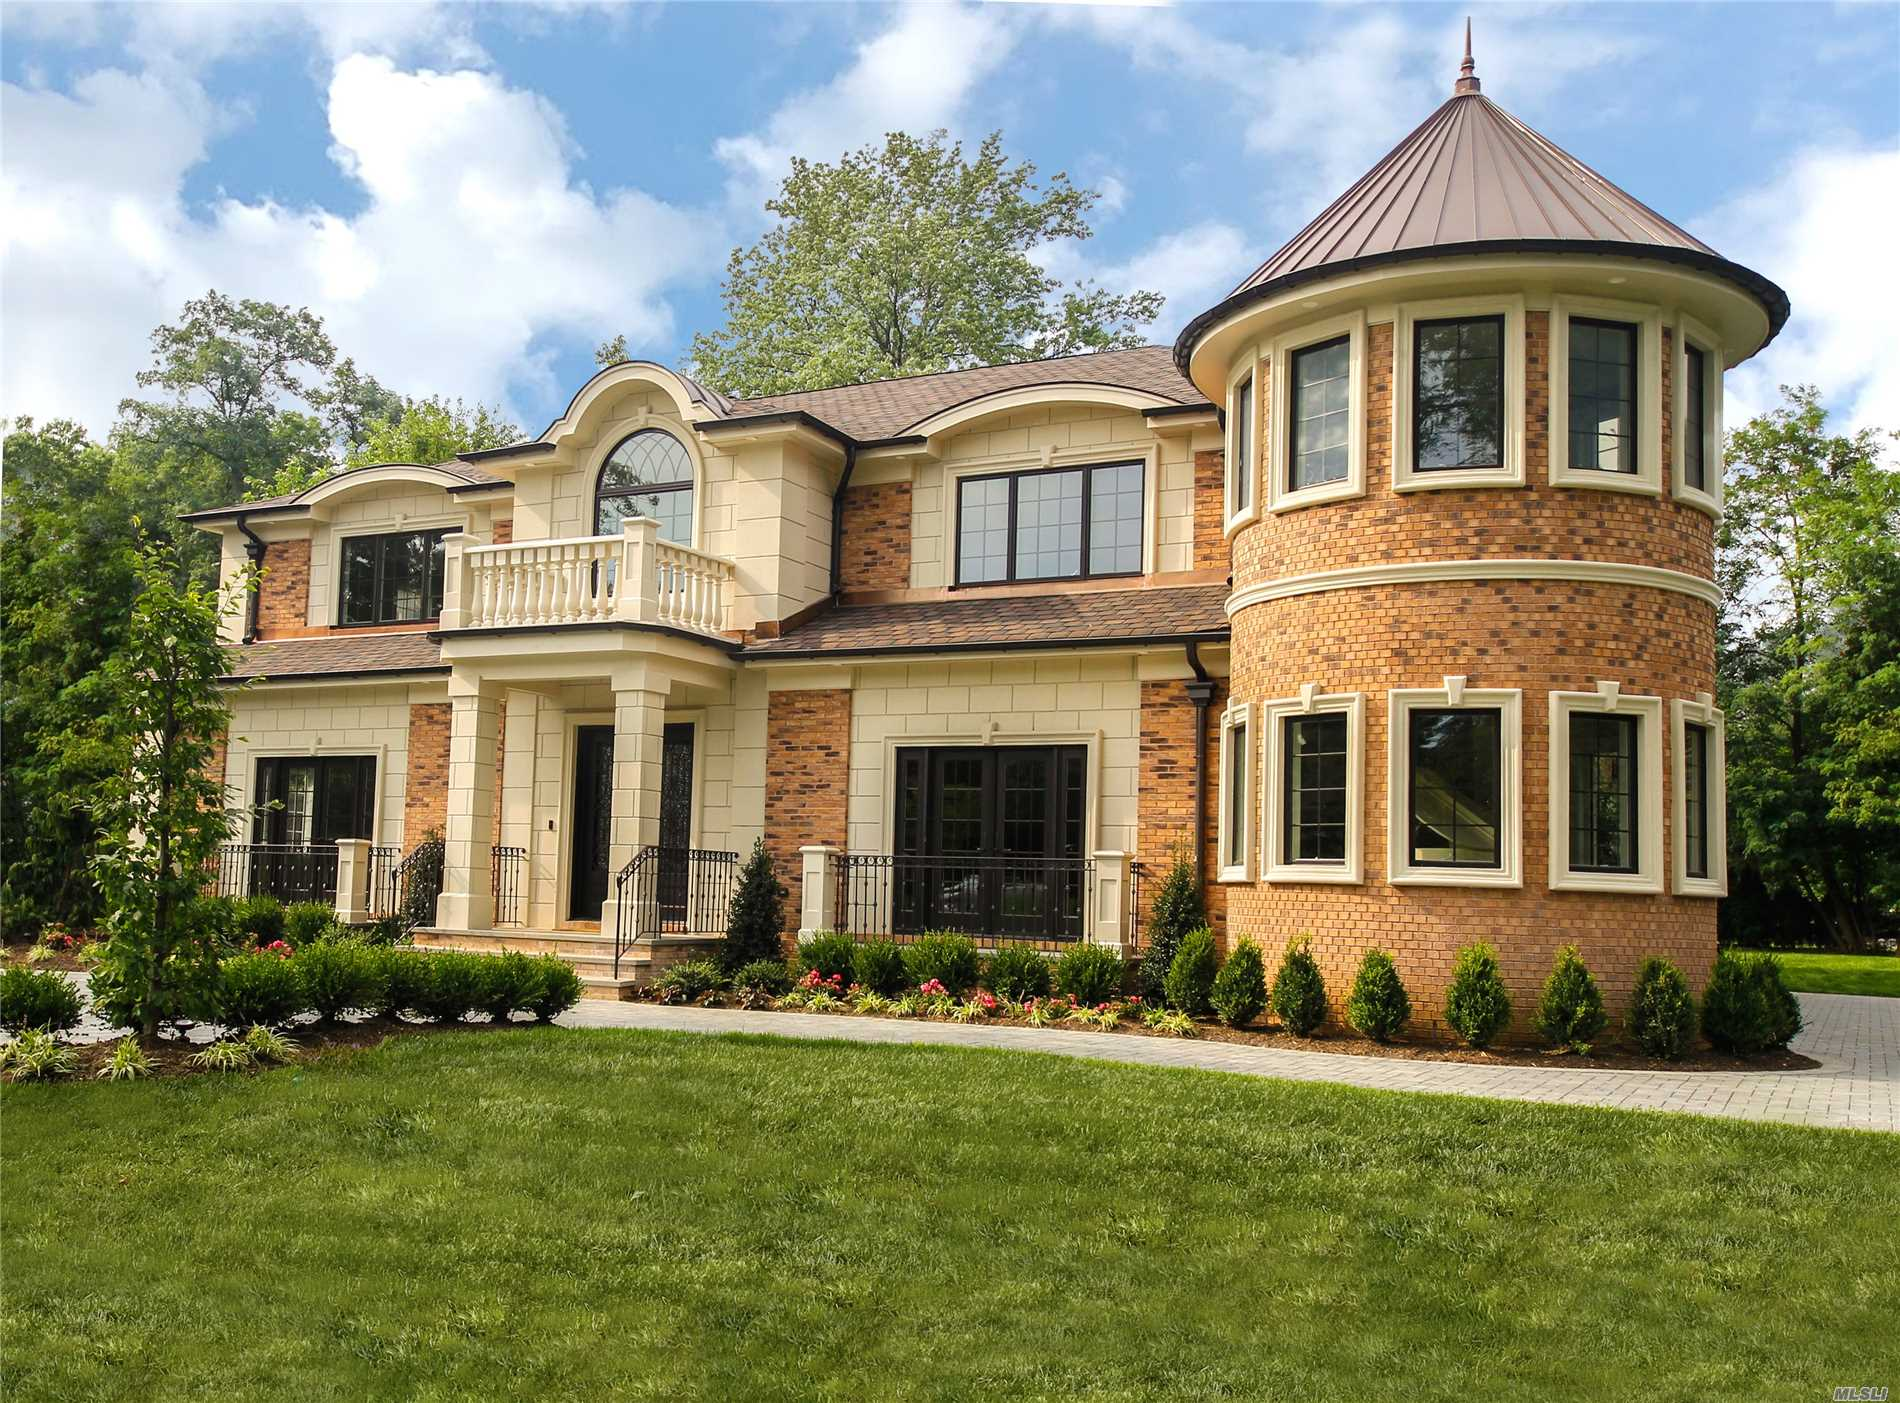 Over 5200 Sf Of Luxury Living Space In The Prestigious Country Club Section Of Roslyn - E. Williston Sd. 2-Story Grand Entry Leads You Into This Spectacular New Construction With 11 Foot Ceilings Radiant Heated Floors, Lvrm, Dining Rm, Chef's Kitchen, Den, All Ensuite Bdrms, , Smart Home Technology, Generator/ Tesla Electric Car-Ready, 2-Car Garage, Gas Heating,  Large Master Suite With 400 Sf Balcony, Wheatley Schools And Many More Amenities--Too Many To List.